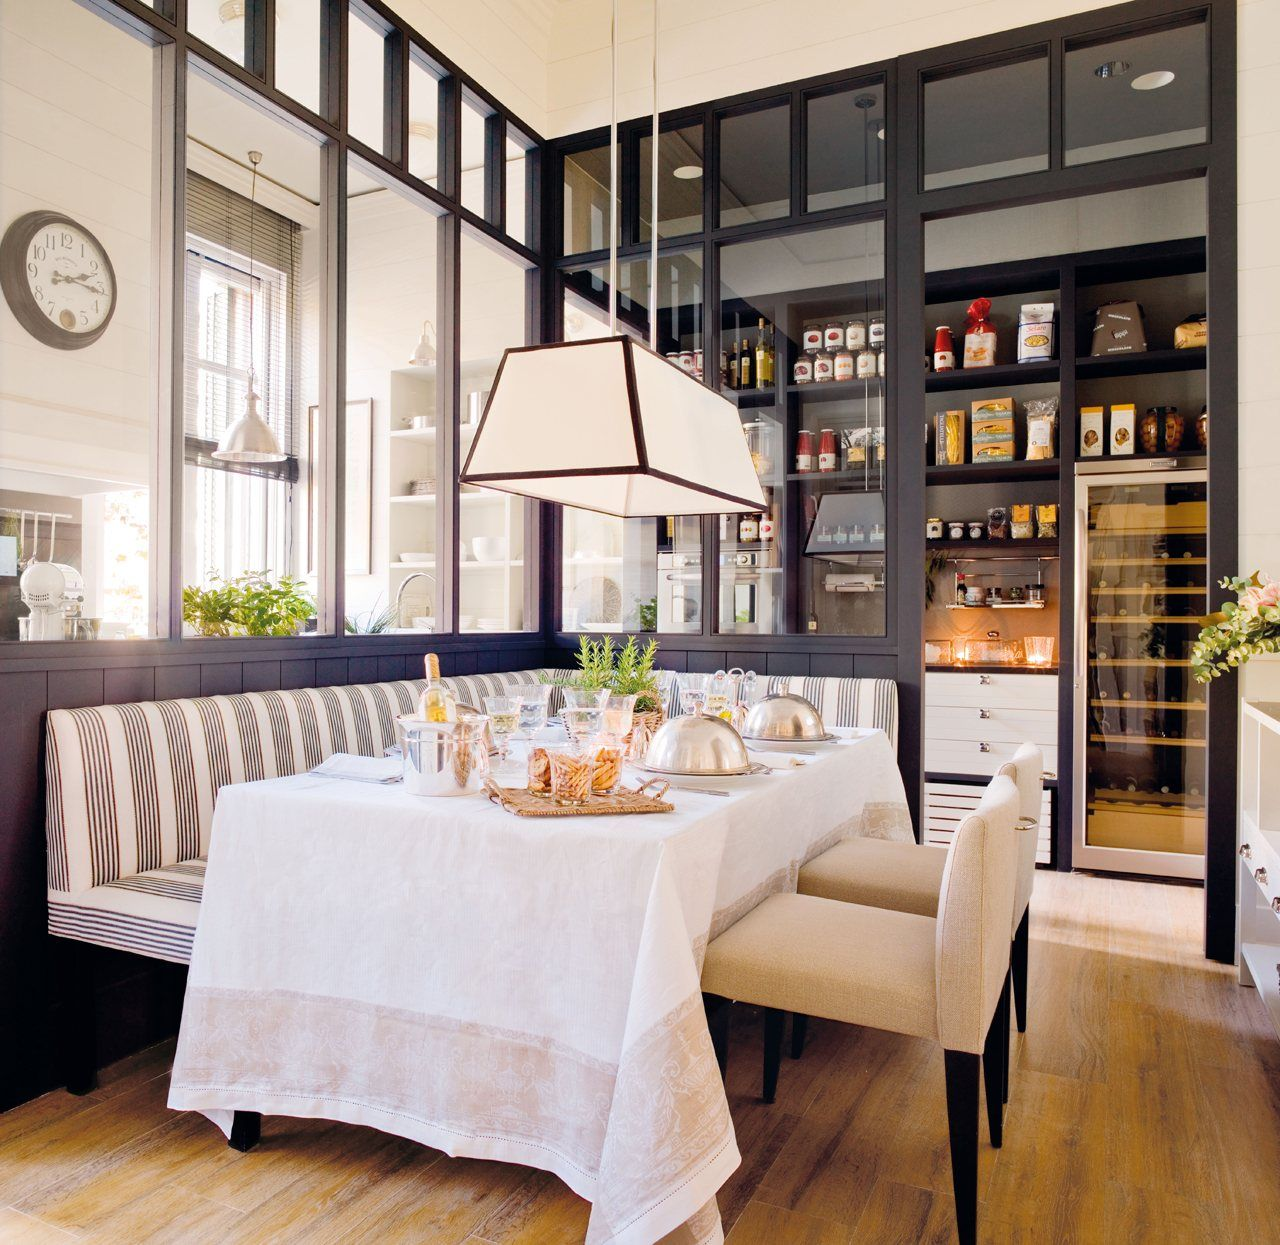 Kitchen living room window  clever cozy dining space dark windows banquette  planking